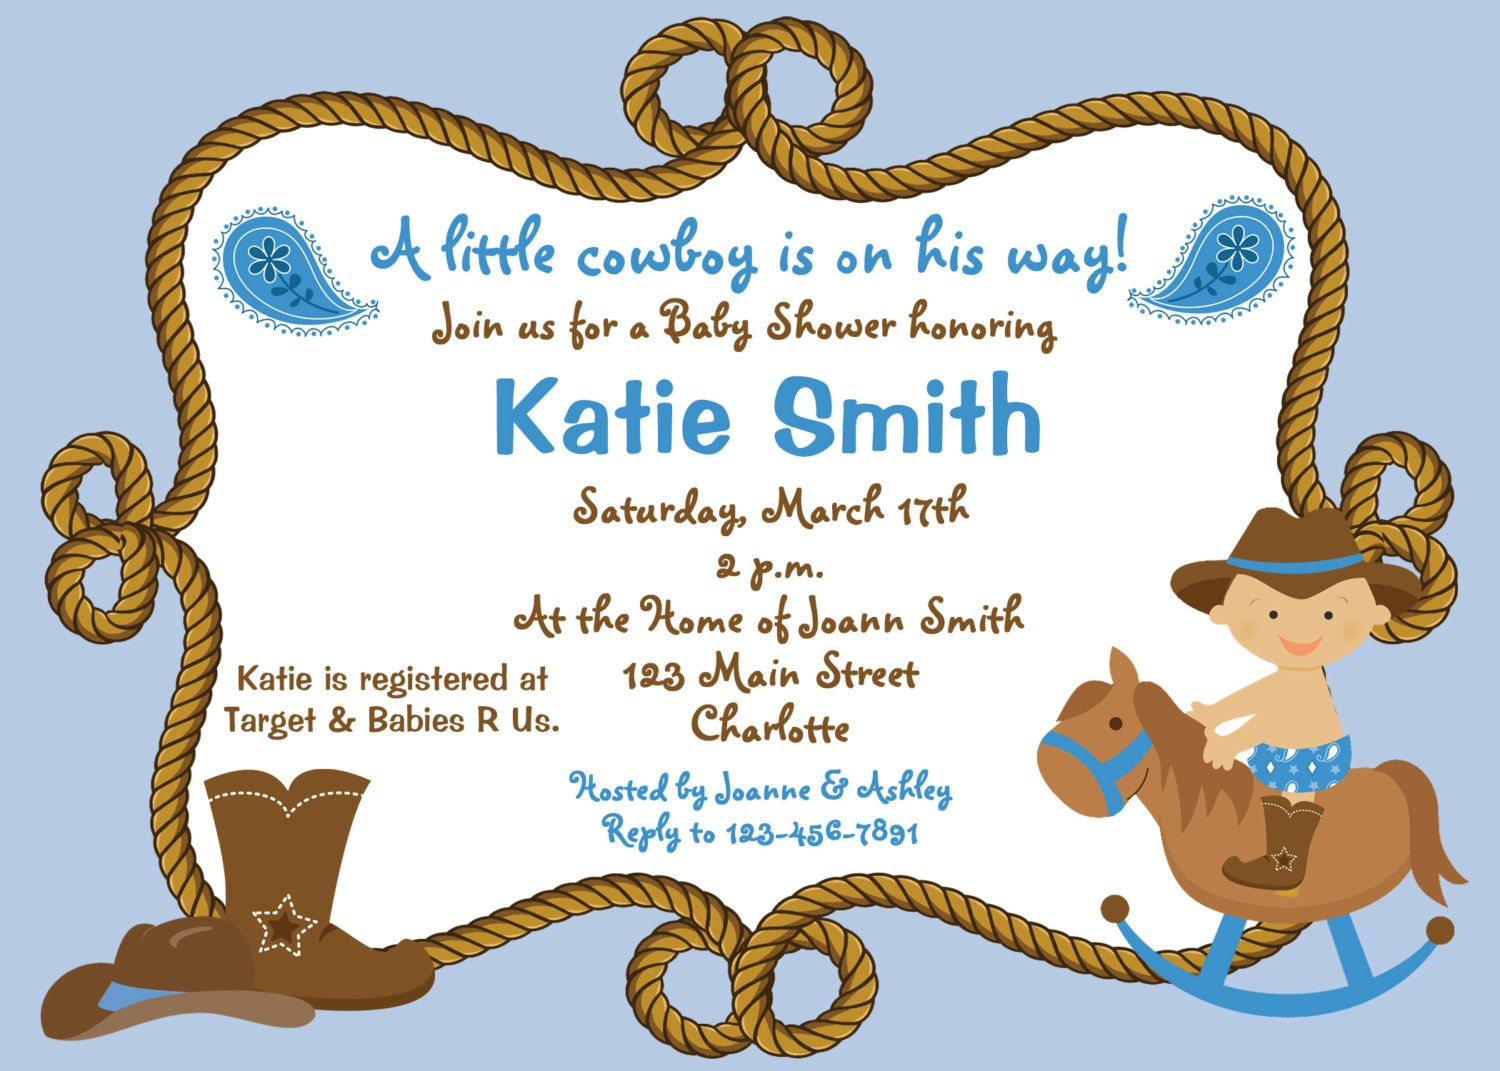 Baby shower invitation baby cowboy boy shower invitation you once upon a time baby shower theme baby shower invitation baby cowboy boy shower filmwisefo Images